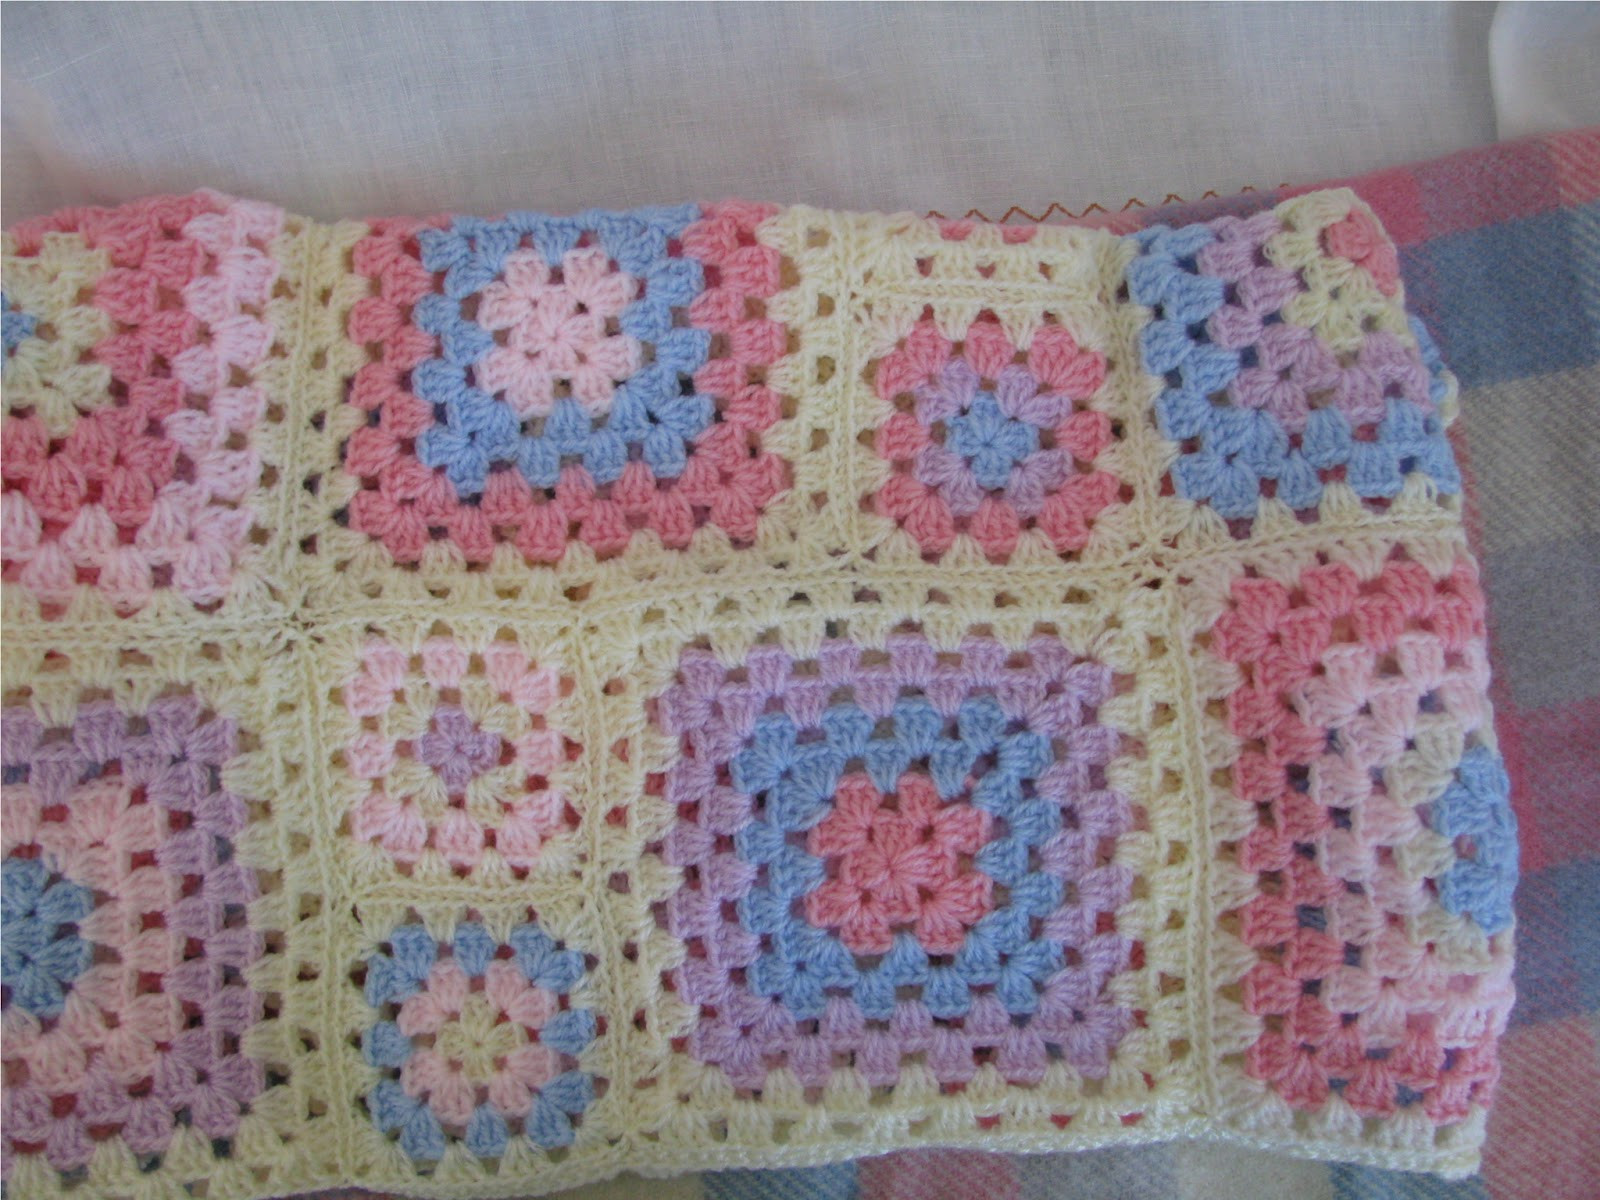 Crochet toddler Blanket Elegant Shortbread & Ginger Crochet Baby Blanket Of Amazing 41 Ideas Crochet toddler Blanket